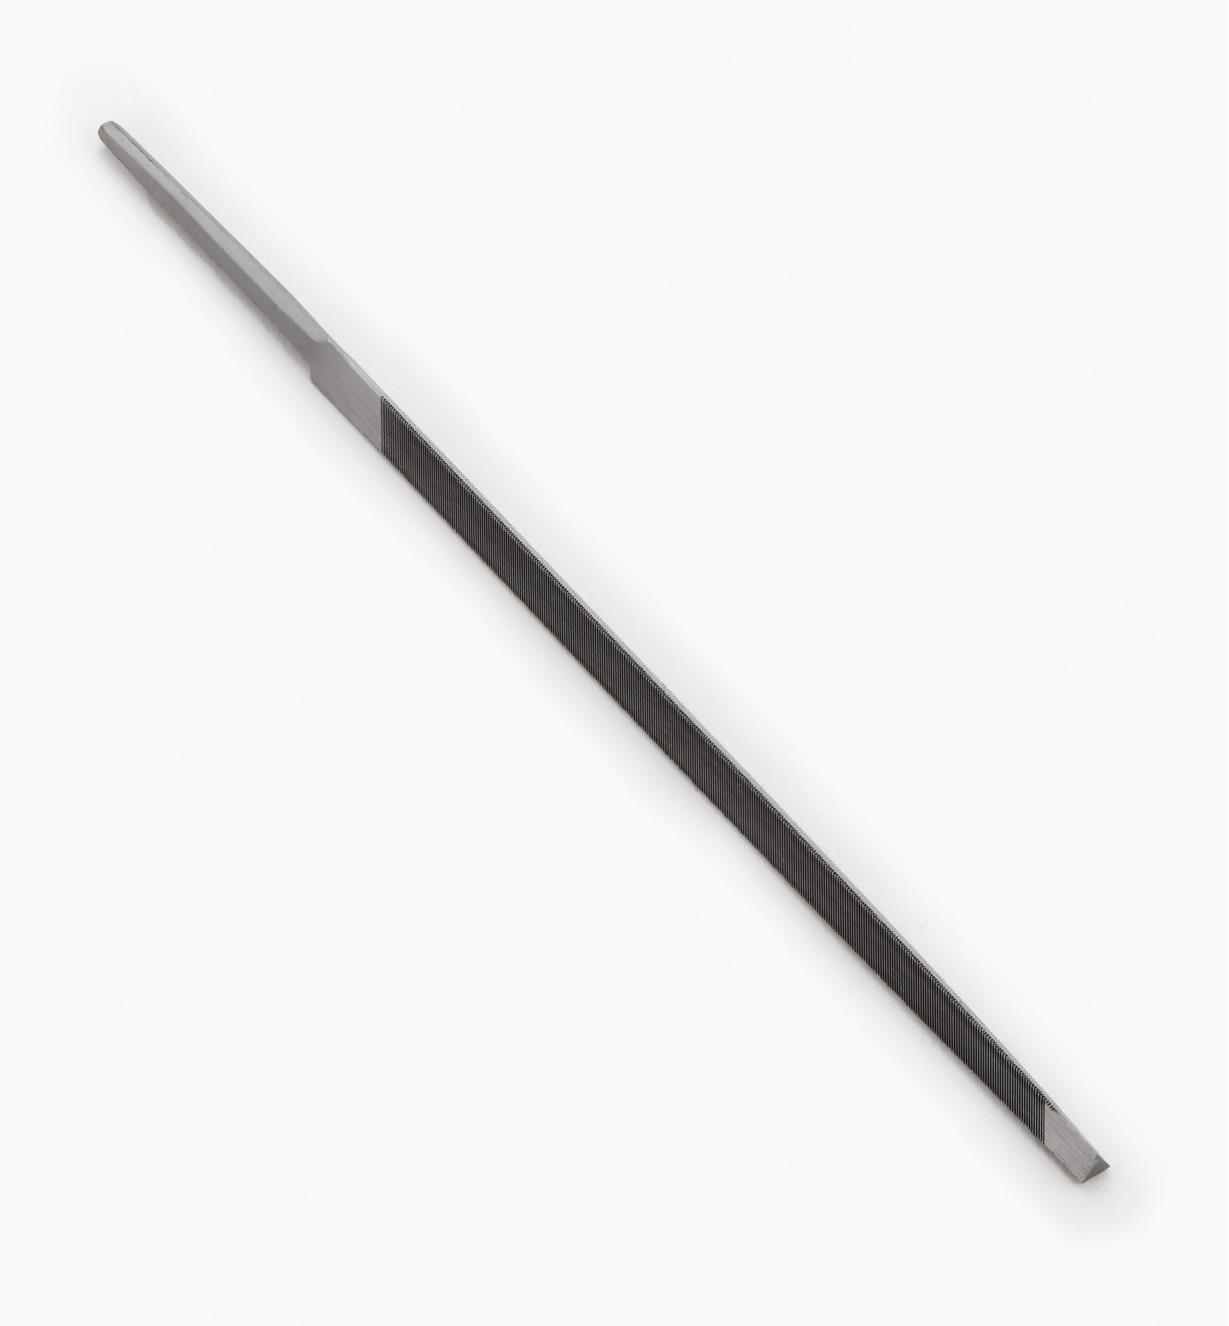 "62W3312 - 5"" Dbl. Extra-Slim Taper File (11 to 14 tpi)"